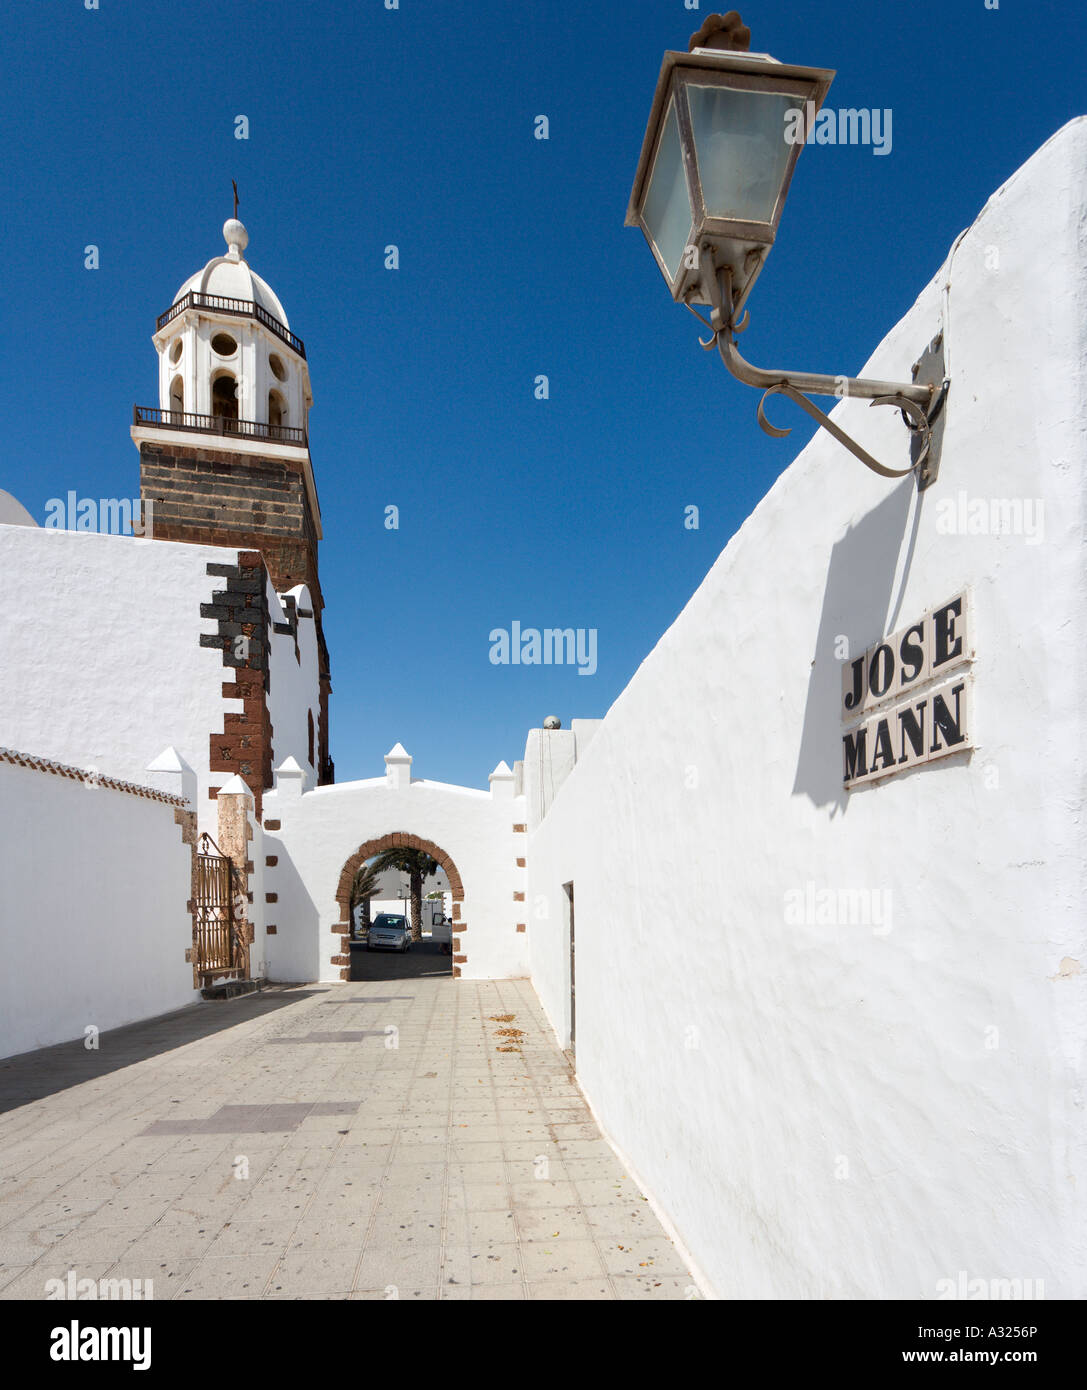 Iglesia de Nuestra Senora de Guadalupe, Teguise, Lanzarote, Canary Islands, Spain Stock Photo